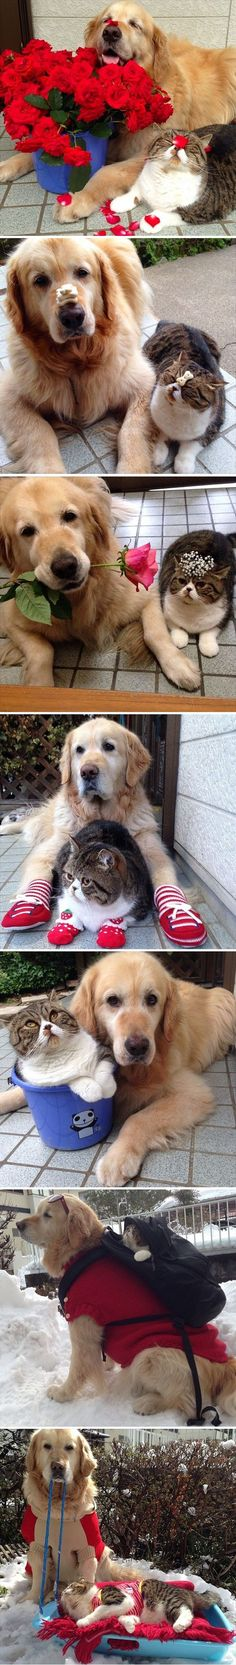 Best Friends – Adorable Kitty and Dog – My Fun Mails